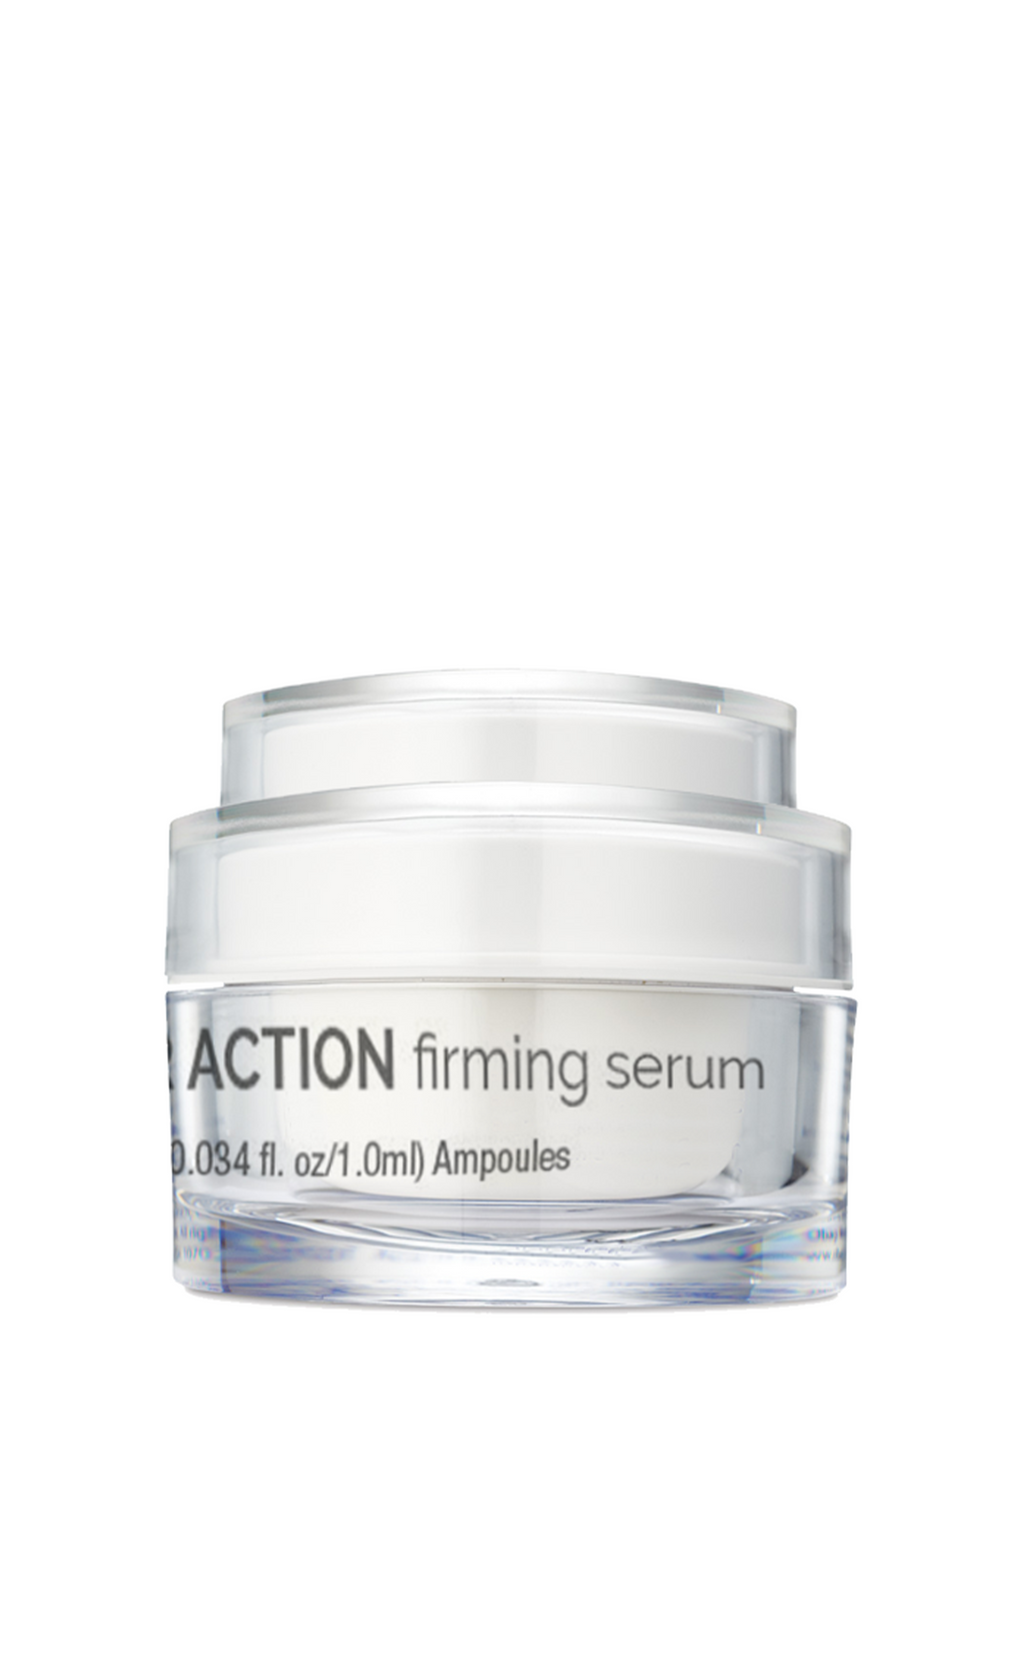 FS140012【細胞緊緻精華(ATX安瓶) | Cellular Action Firming Serum - ATX Recovery Ampoules】(30 ml)